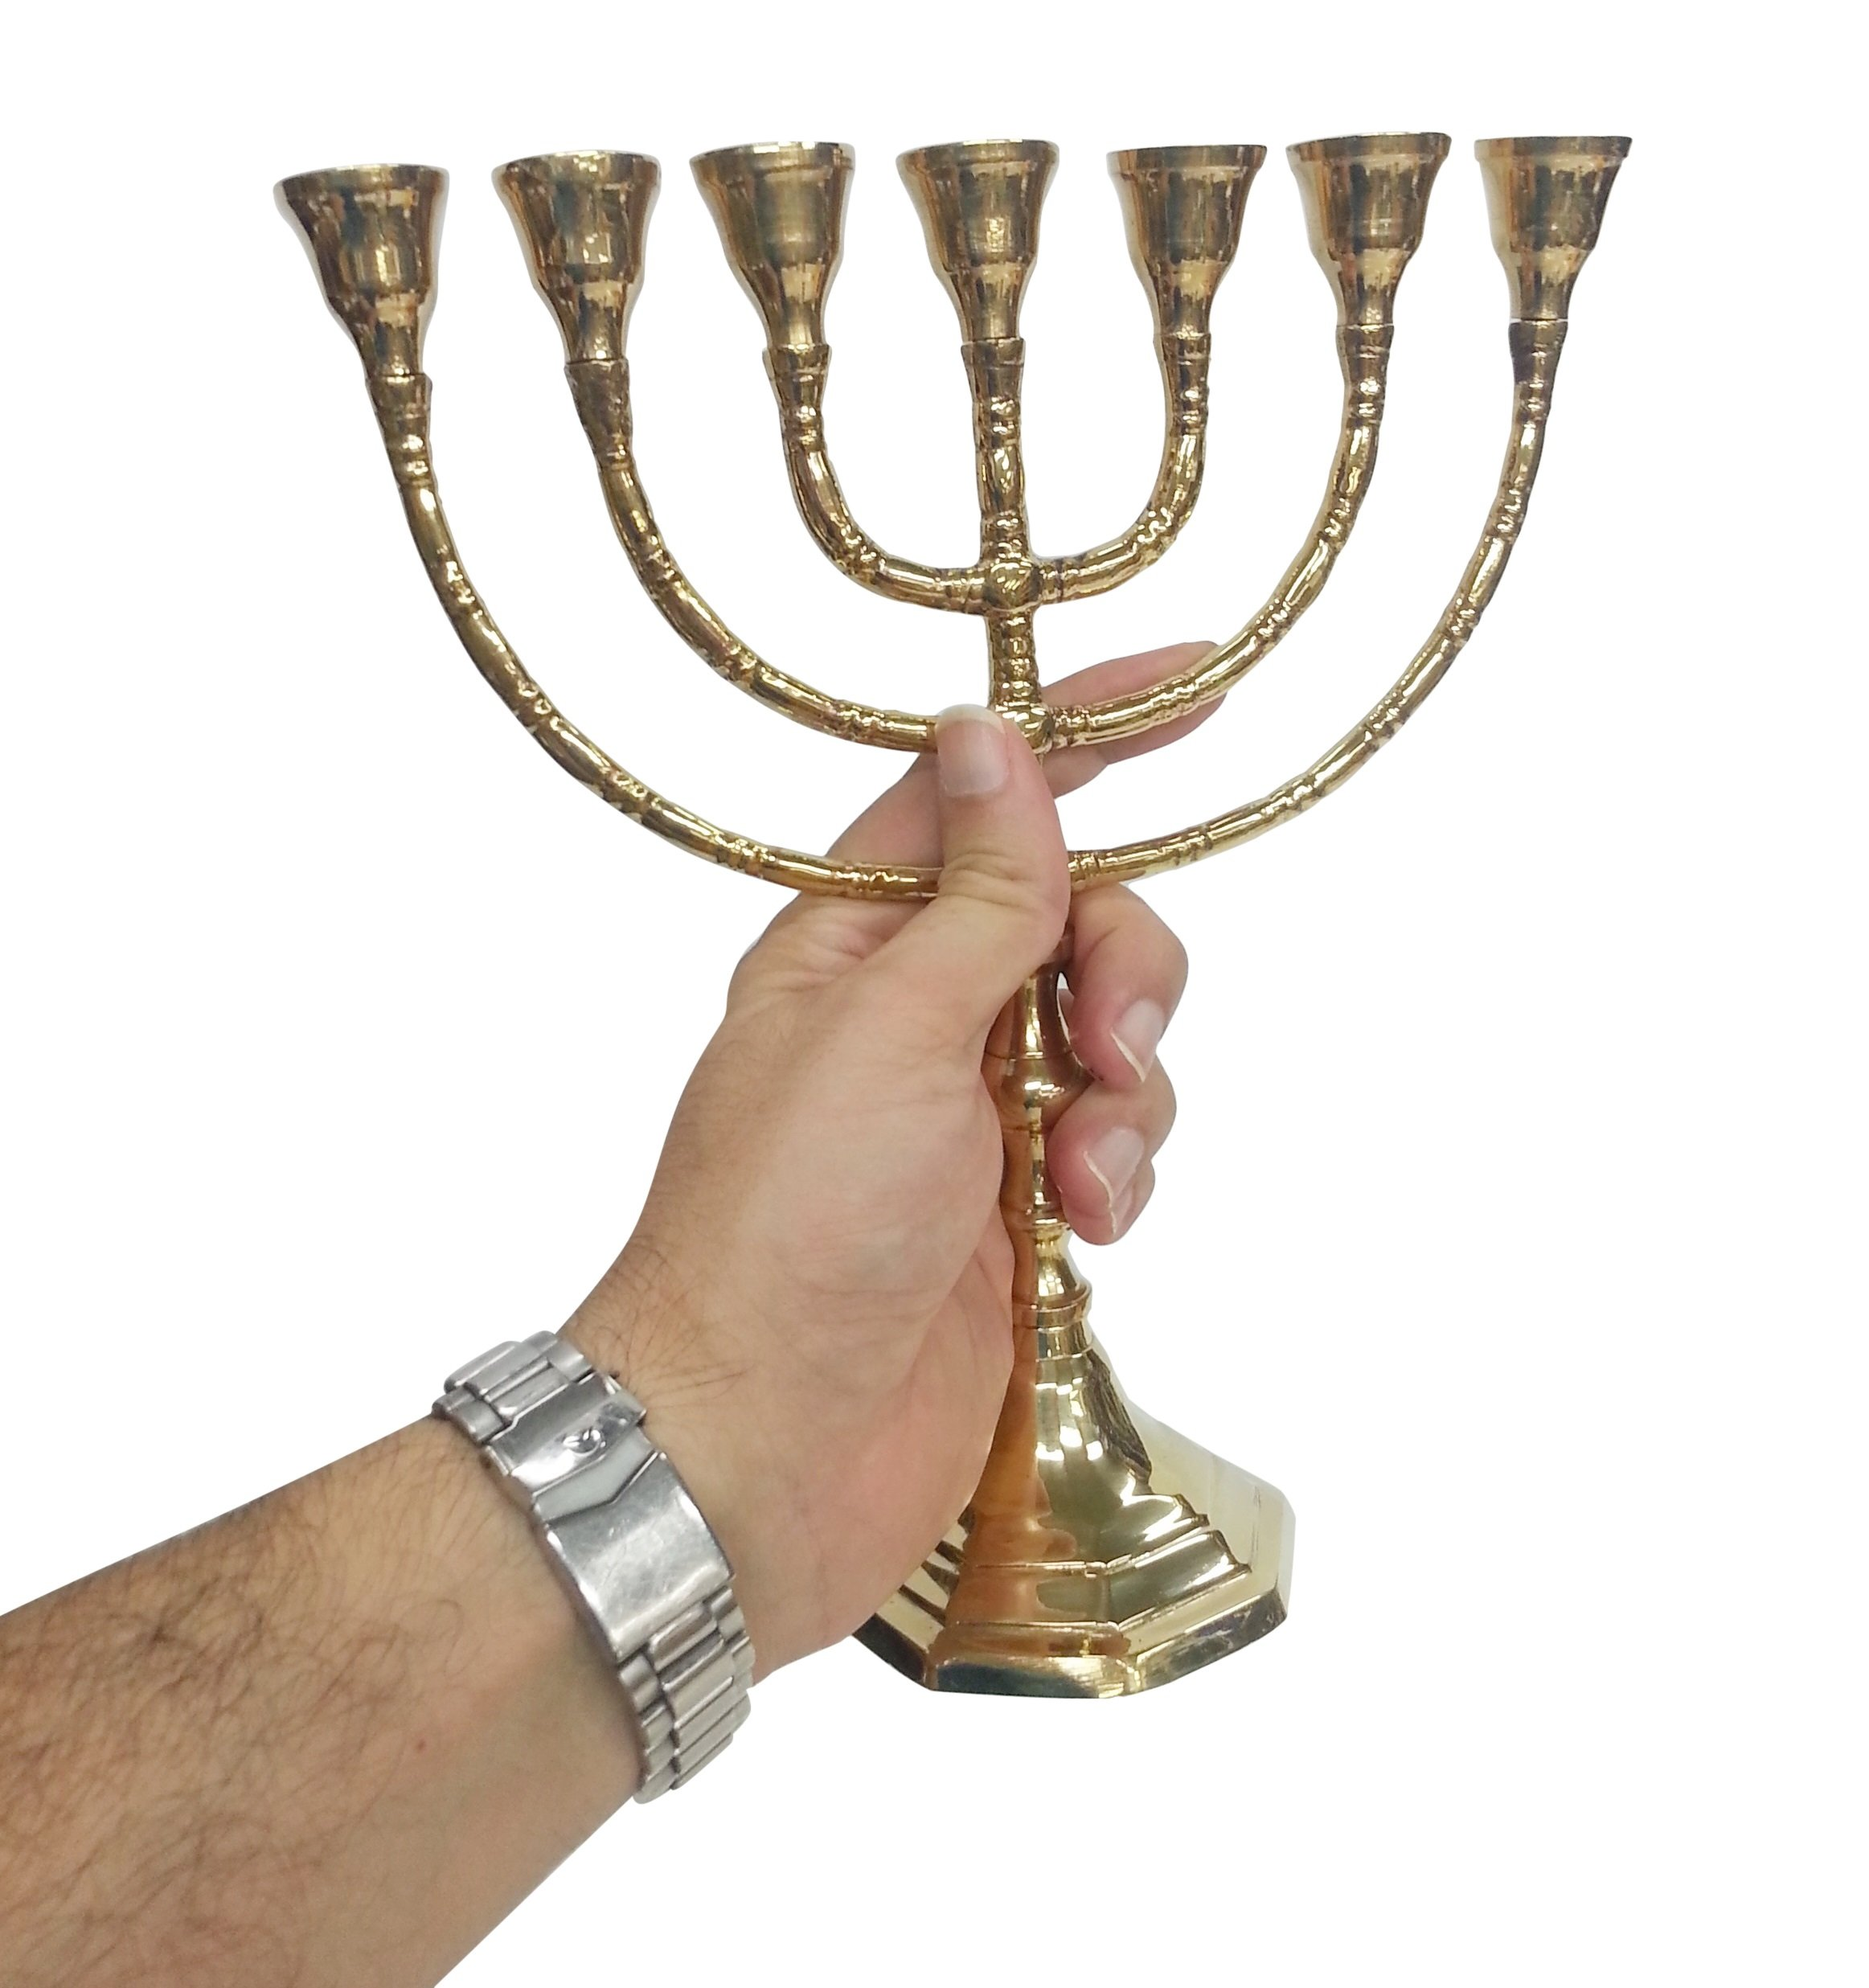 7 Branches Brass Menorah - 10 inches hight